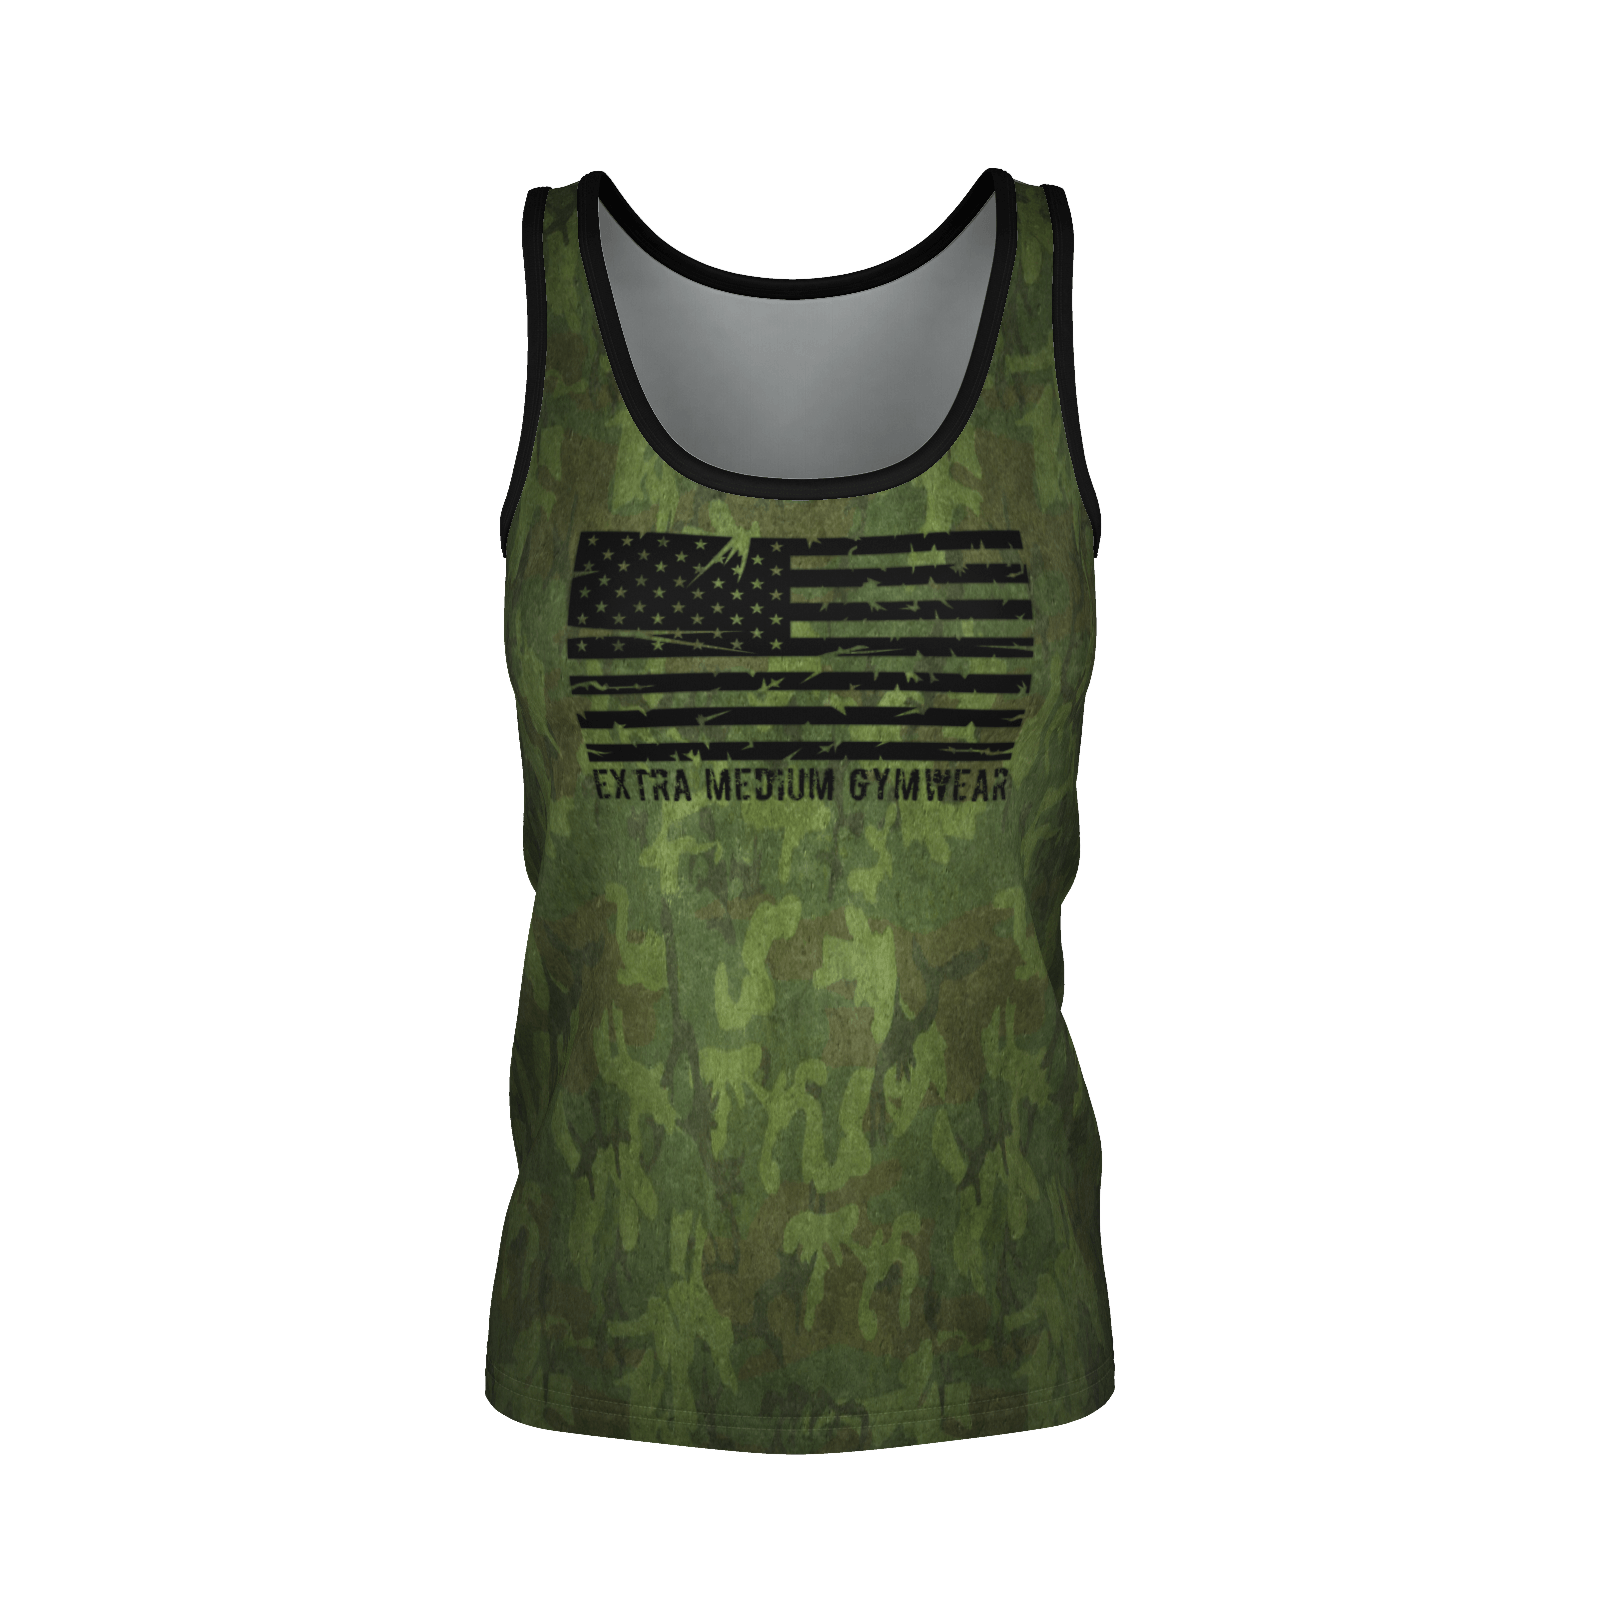 XM GYMWEAR BATTLEGROUND WOMEN'S CAMO TANK